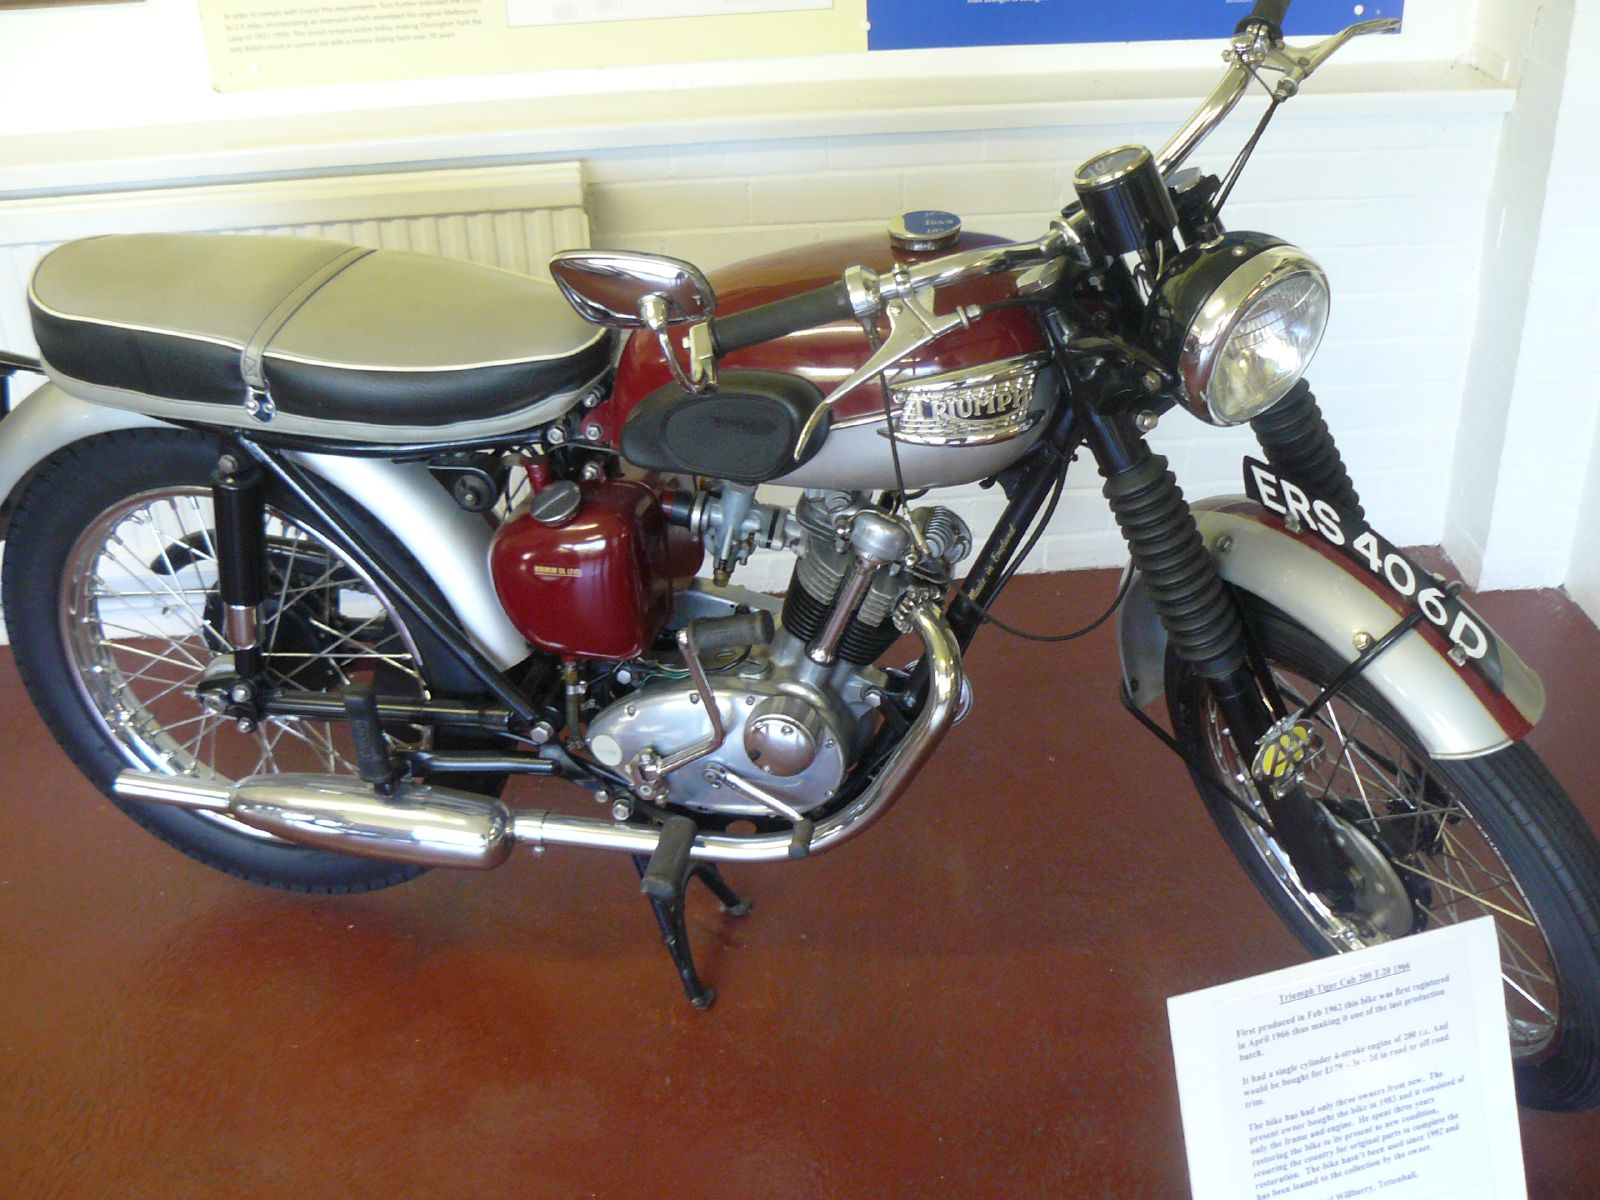 4 Stroke Motorcycle Wiring Diagram Triumph Tiger Cub Wikipedia